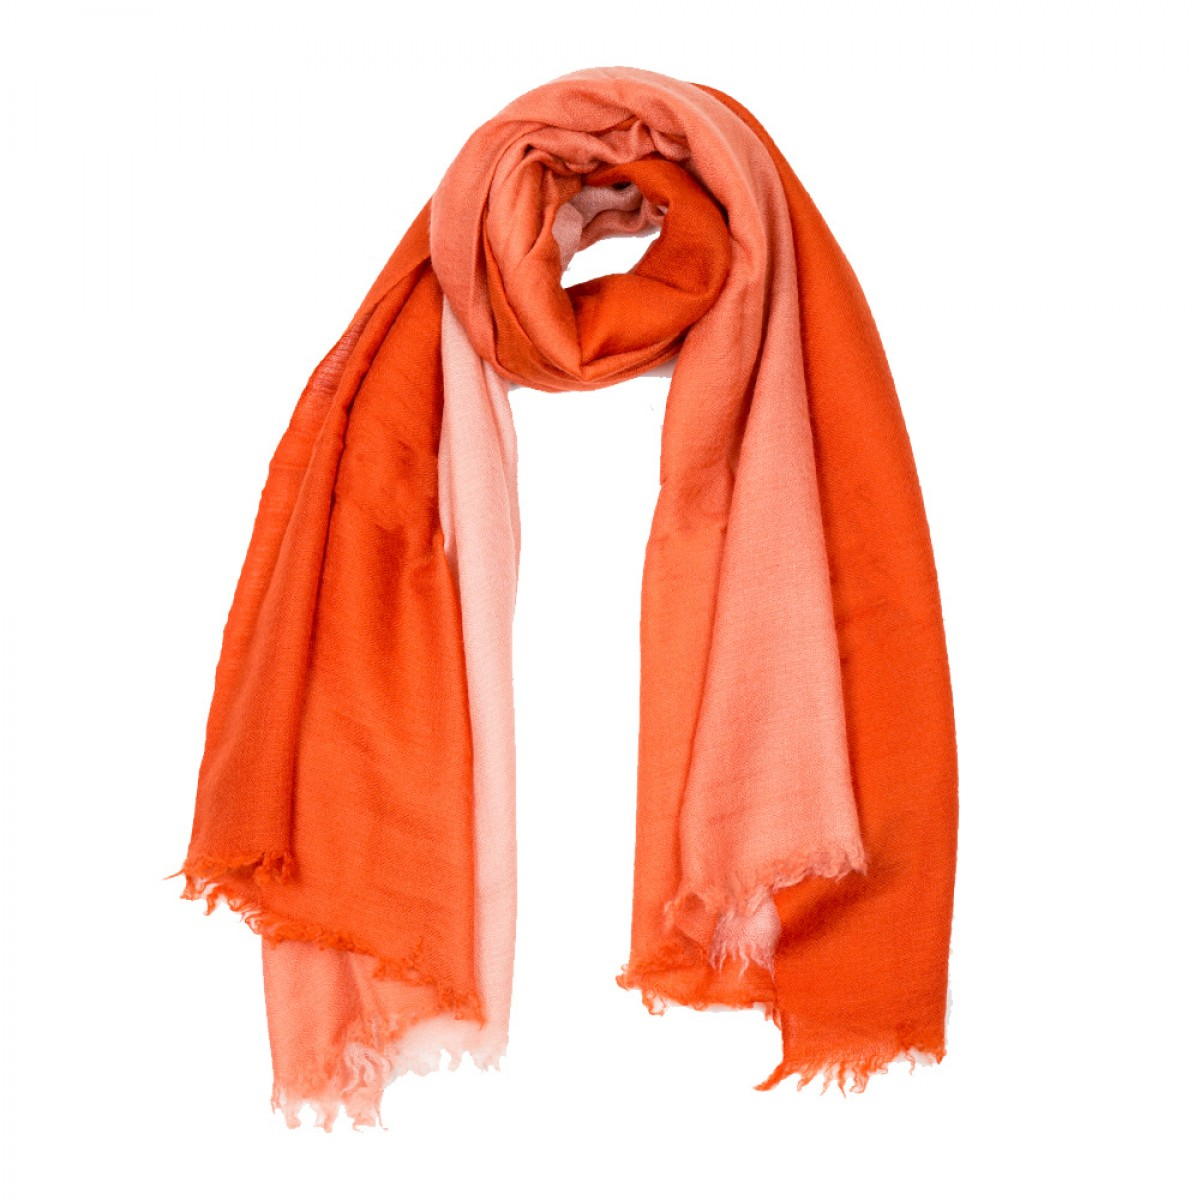 Ombre Pashmina Stole - Red & Orange